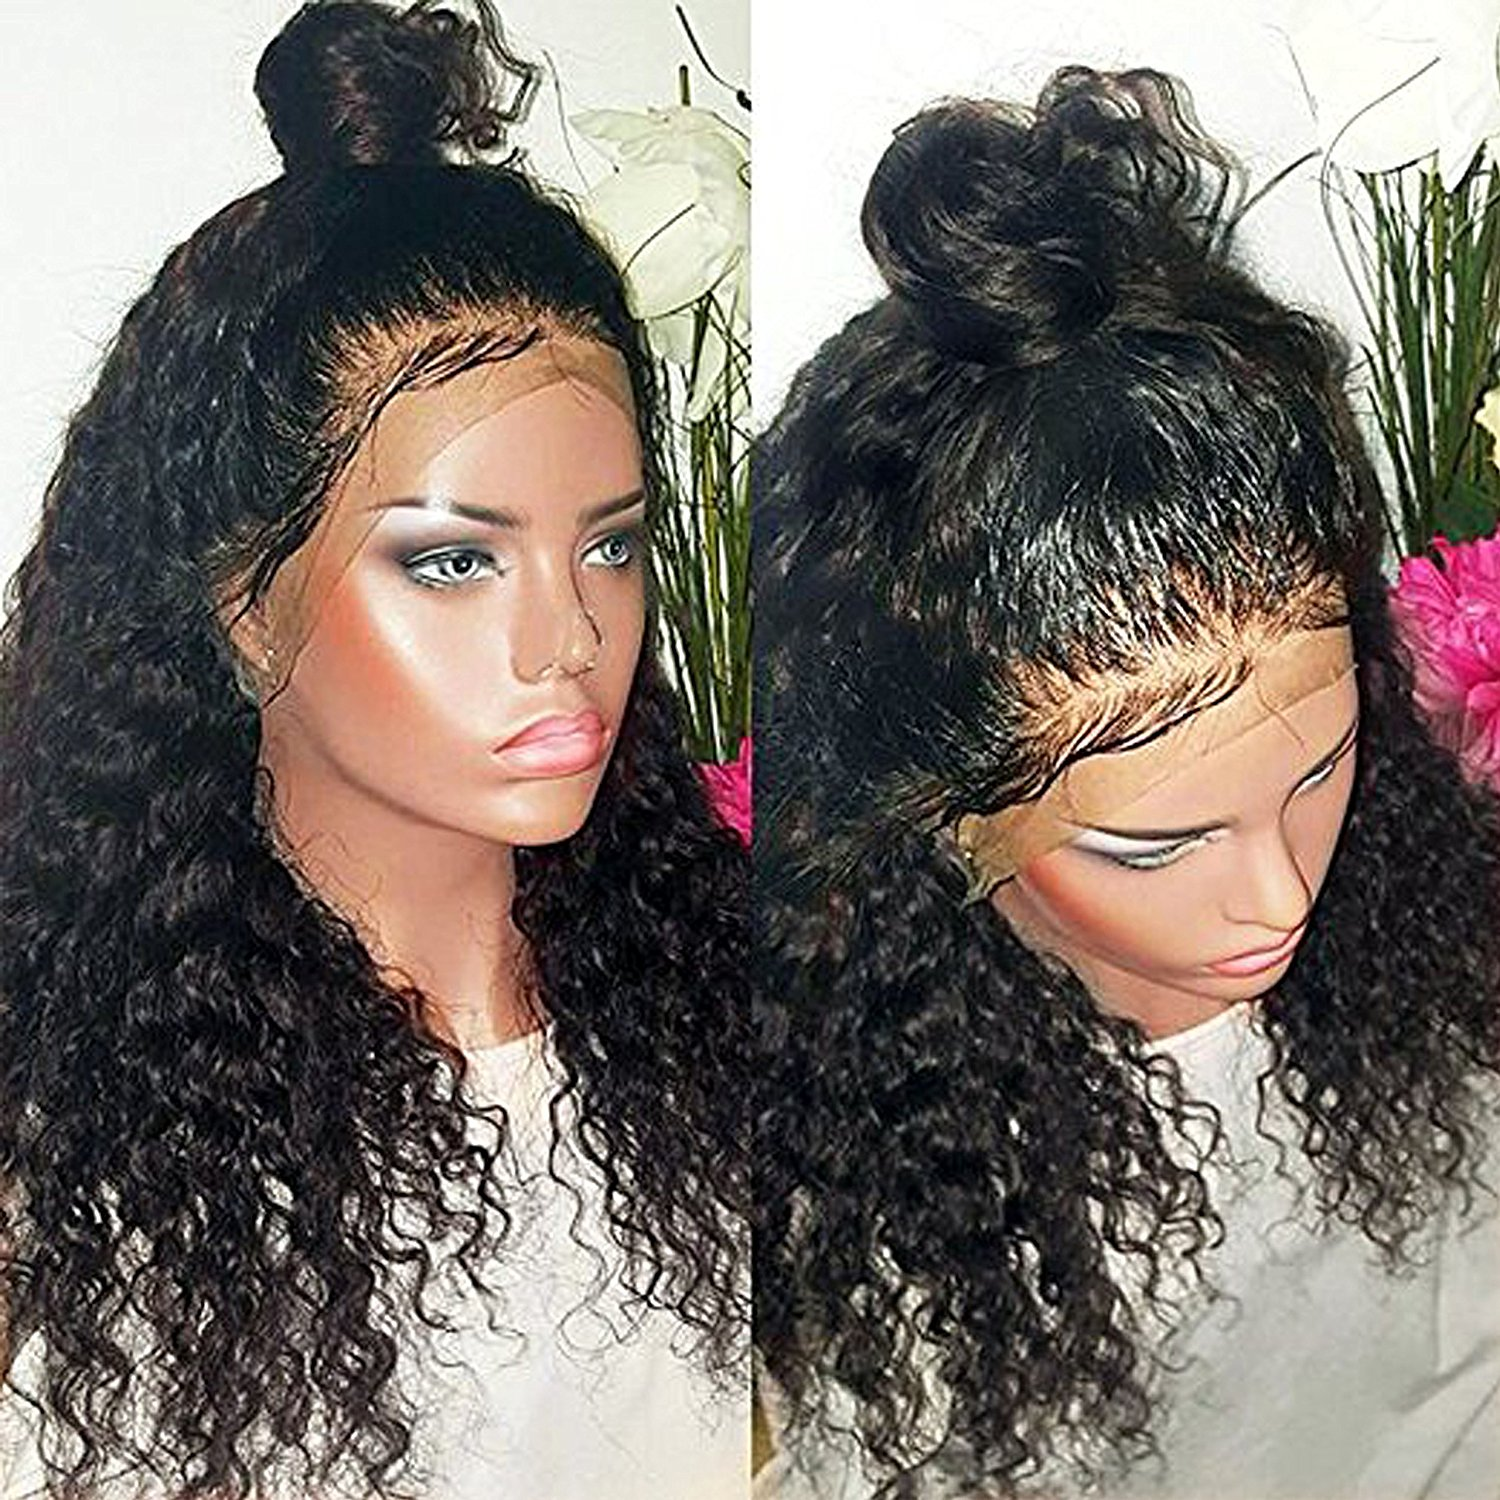 Rishang Hair 360 Lace Frontal Wig Pre Plucked 180% Density Human Hair Wigs for Black Women Wet Wavy Lace Front Wig with Baby Hair(18 inch with 360 lace frontal wig,180 density)